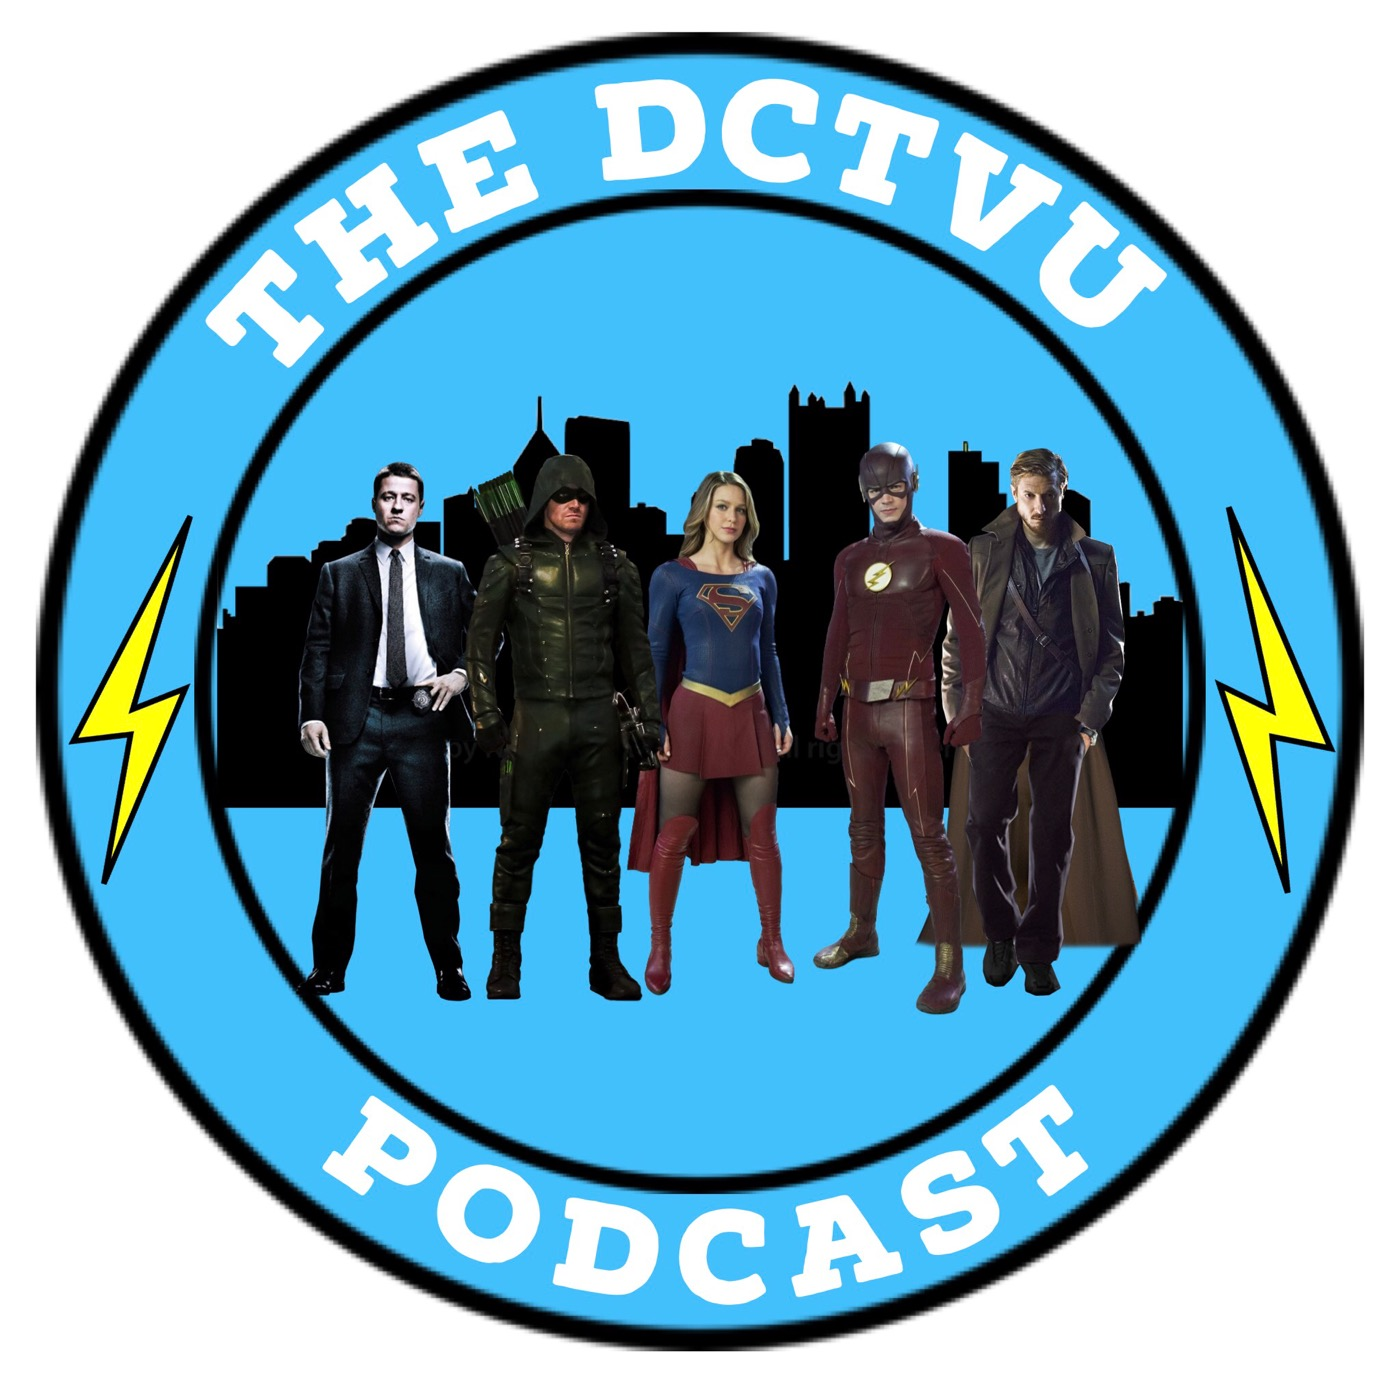 The DCTVU Podcast